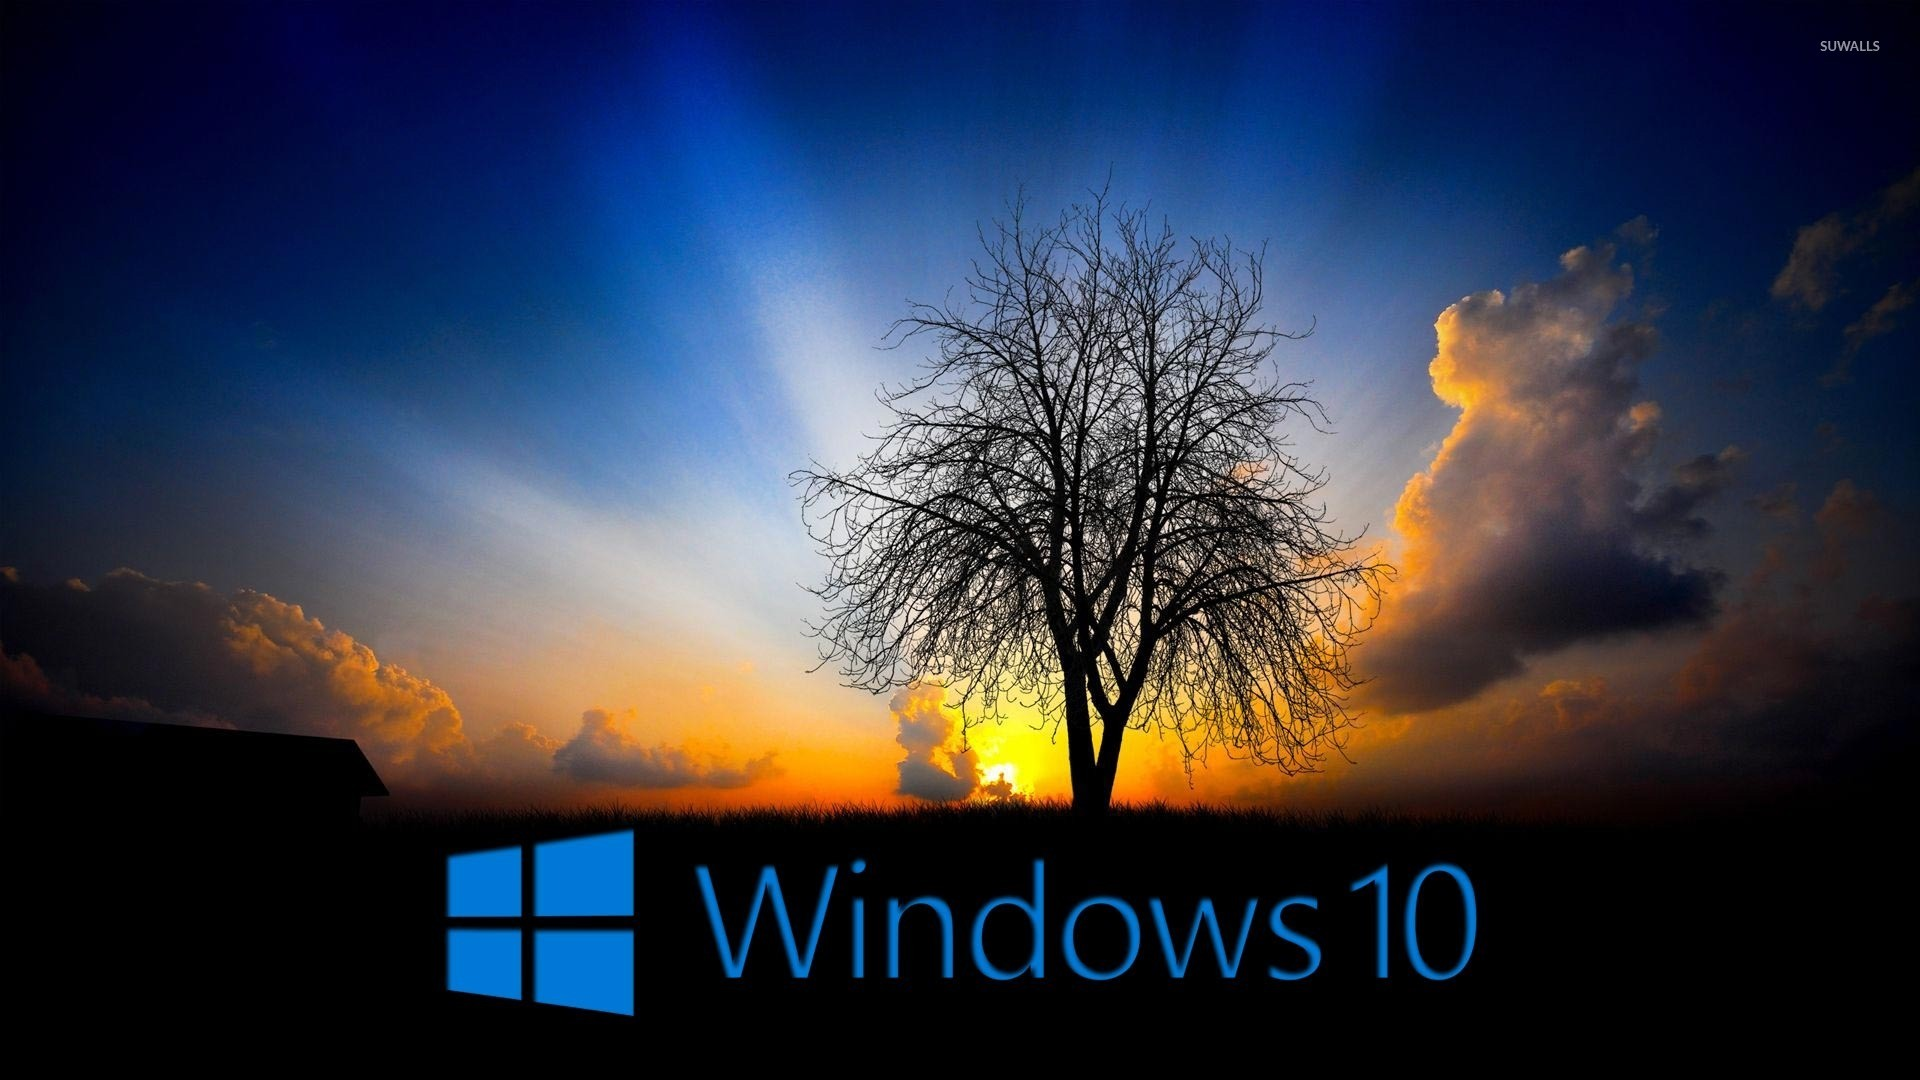 1920x1080 Windows 10 in the twilight [3] wallpaper  jpg